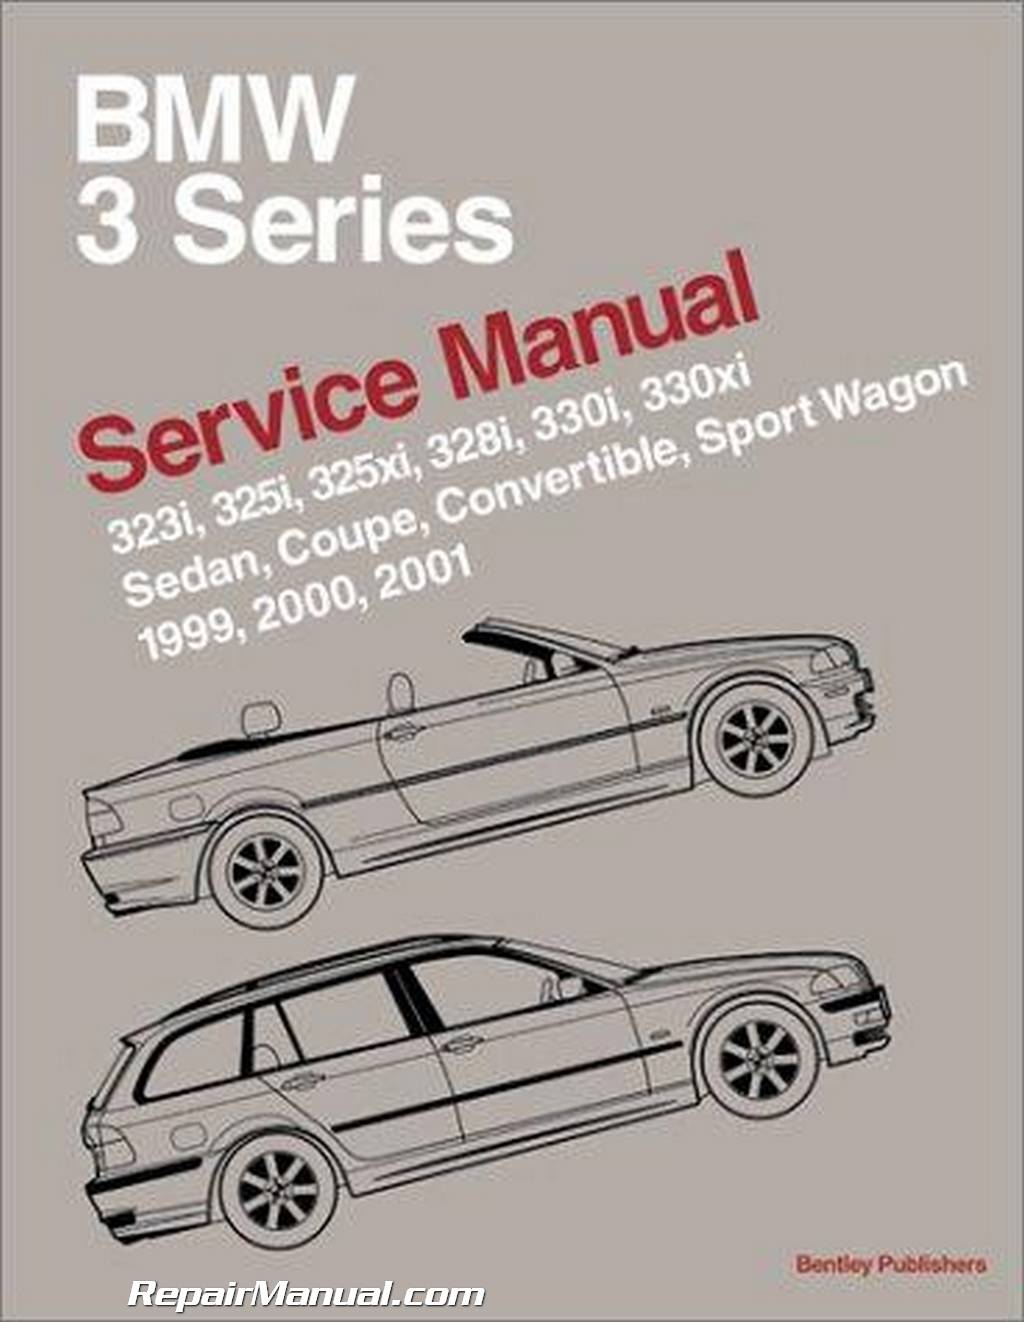 bmw 3 series e46 service repair manual download. Black Bedroom Furniture Sets. Home Design Ideas